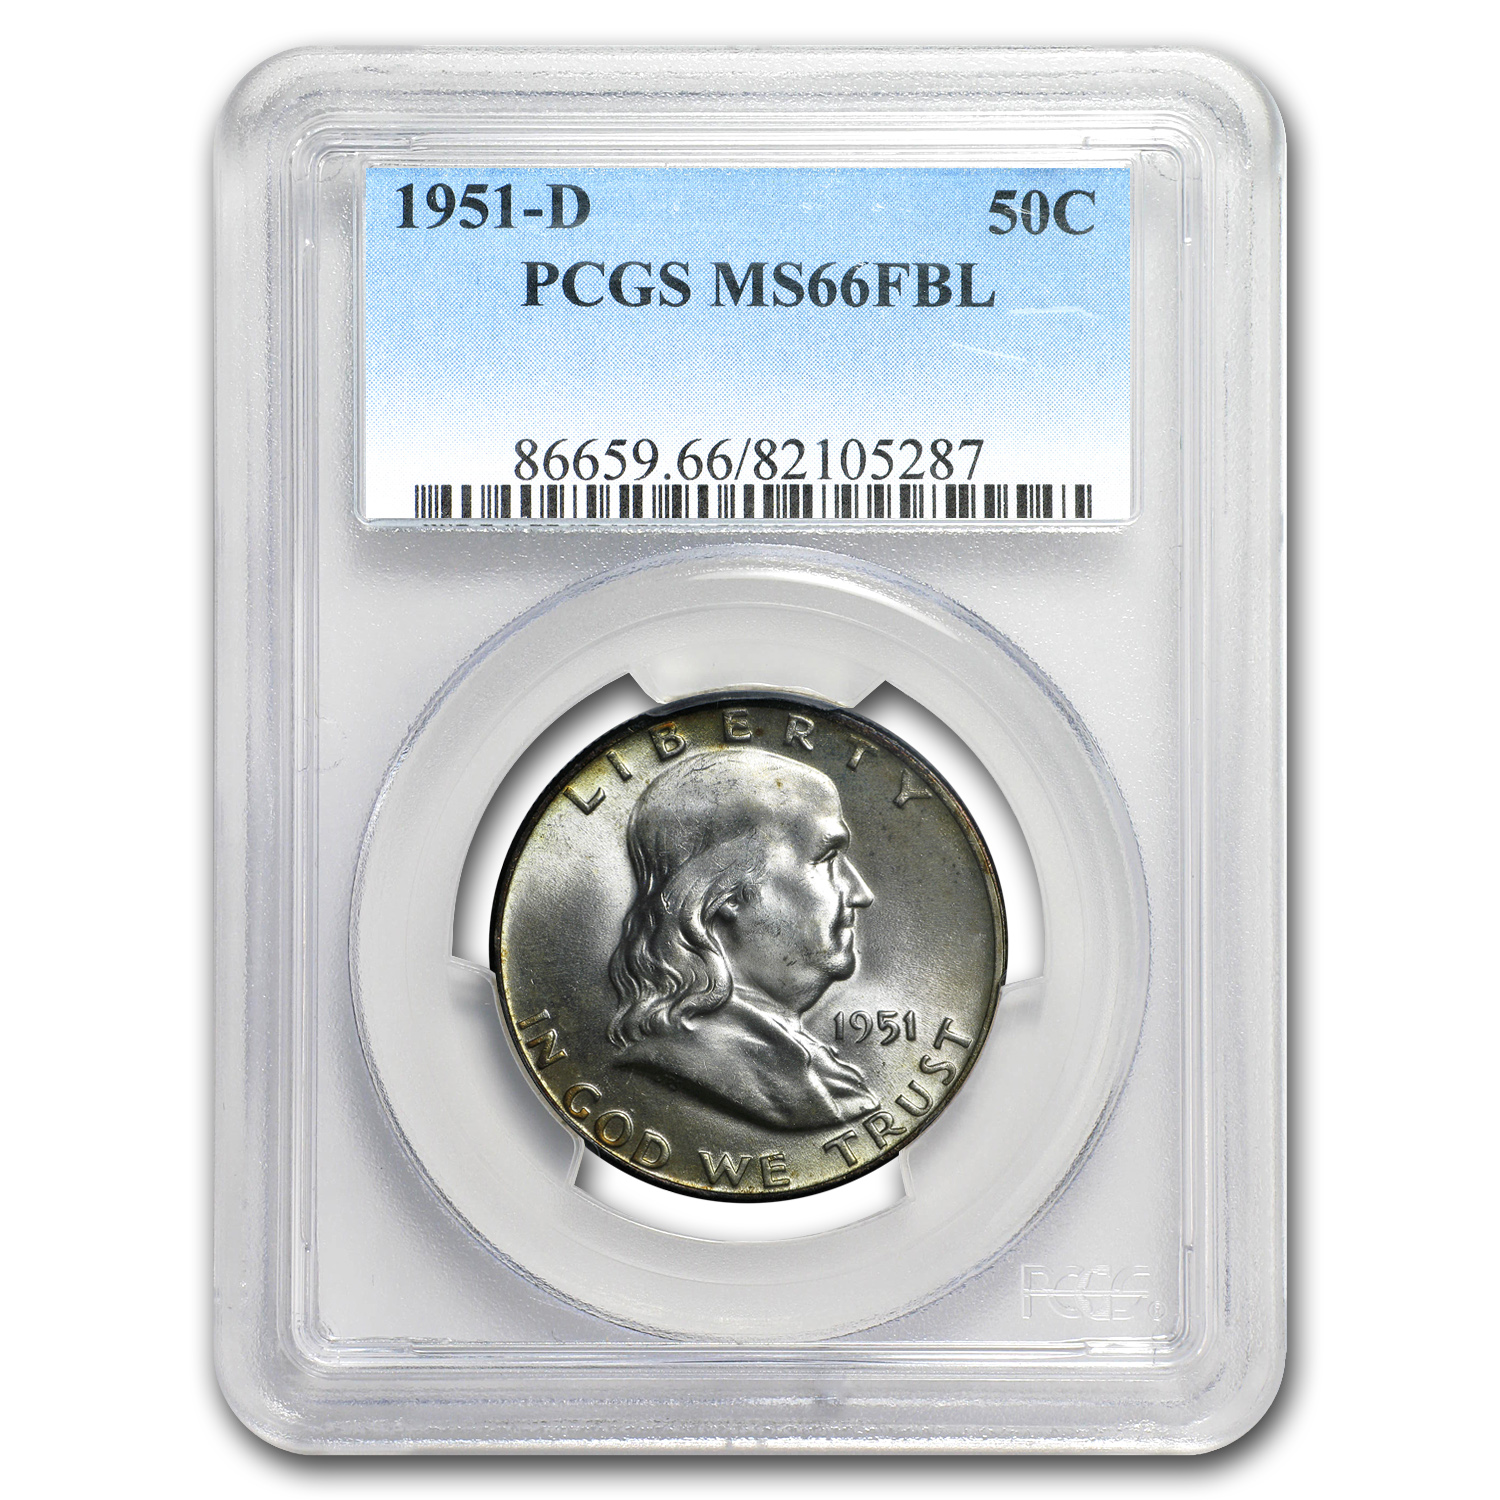 1951-D Franklin Half Dollar MS-66 PCGS (FBL)